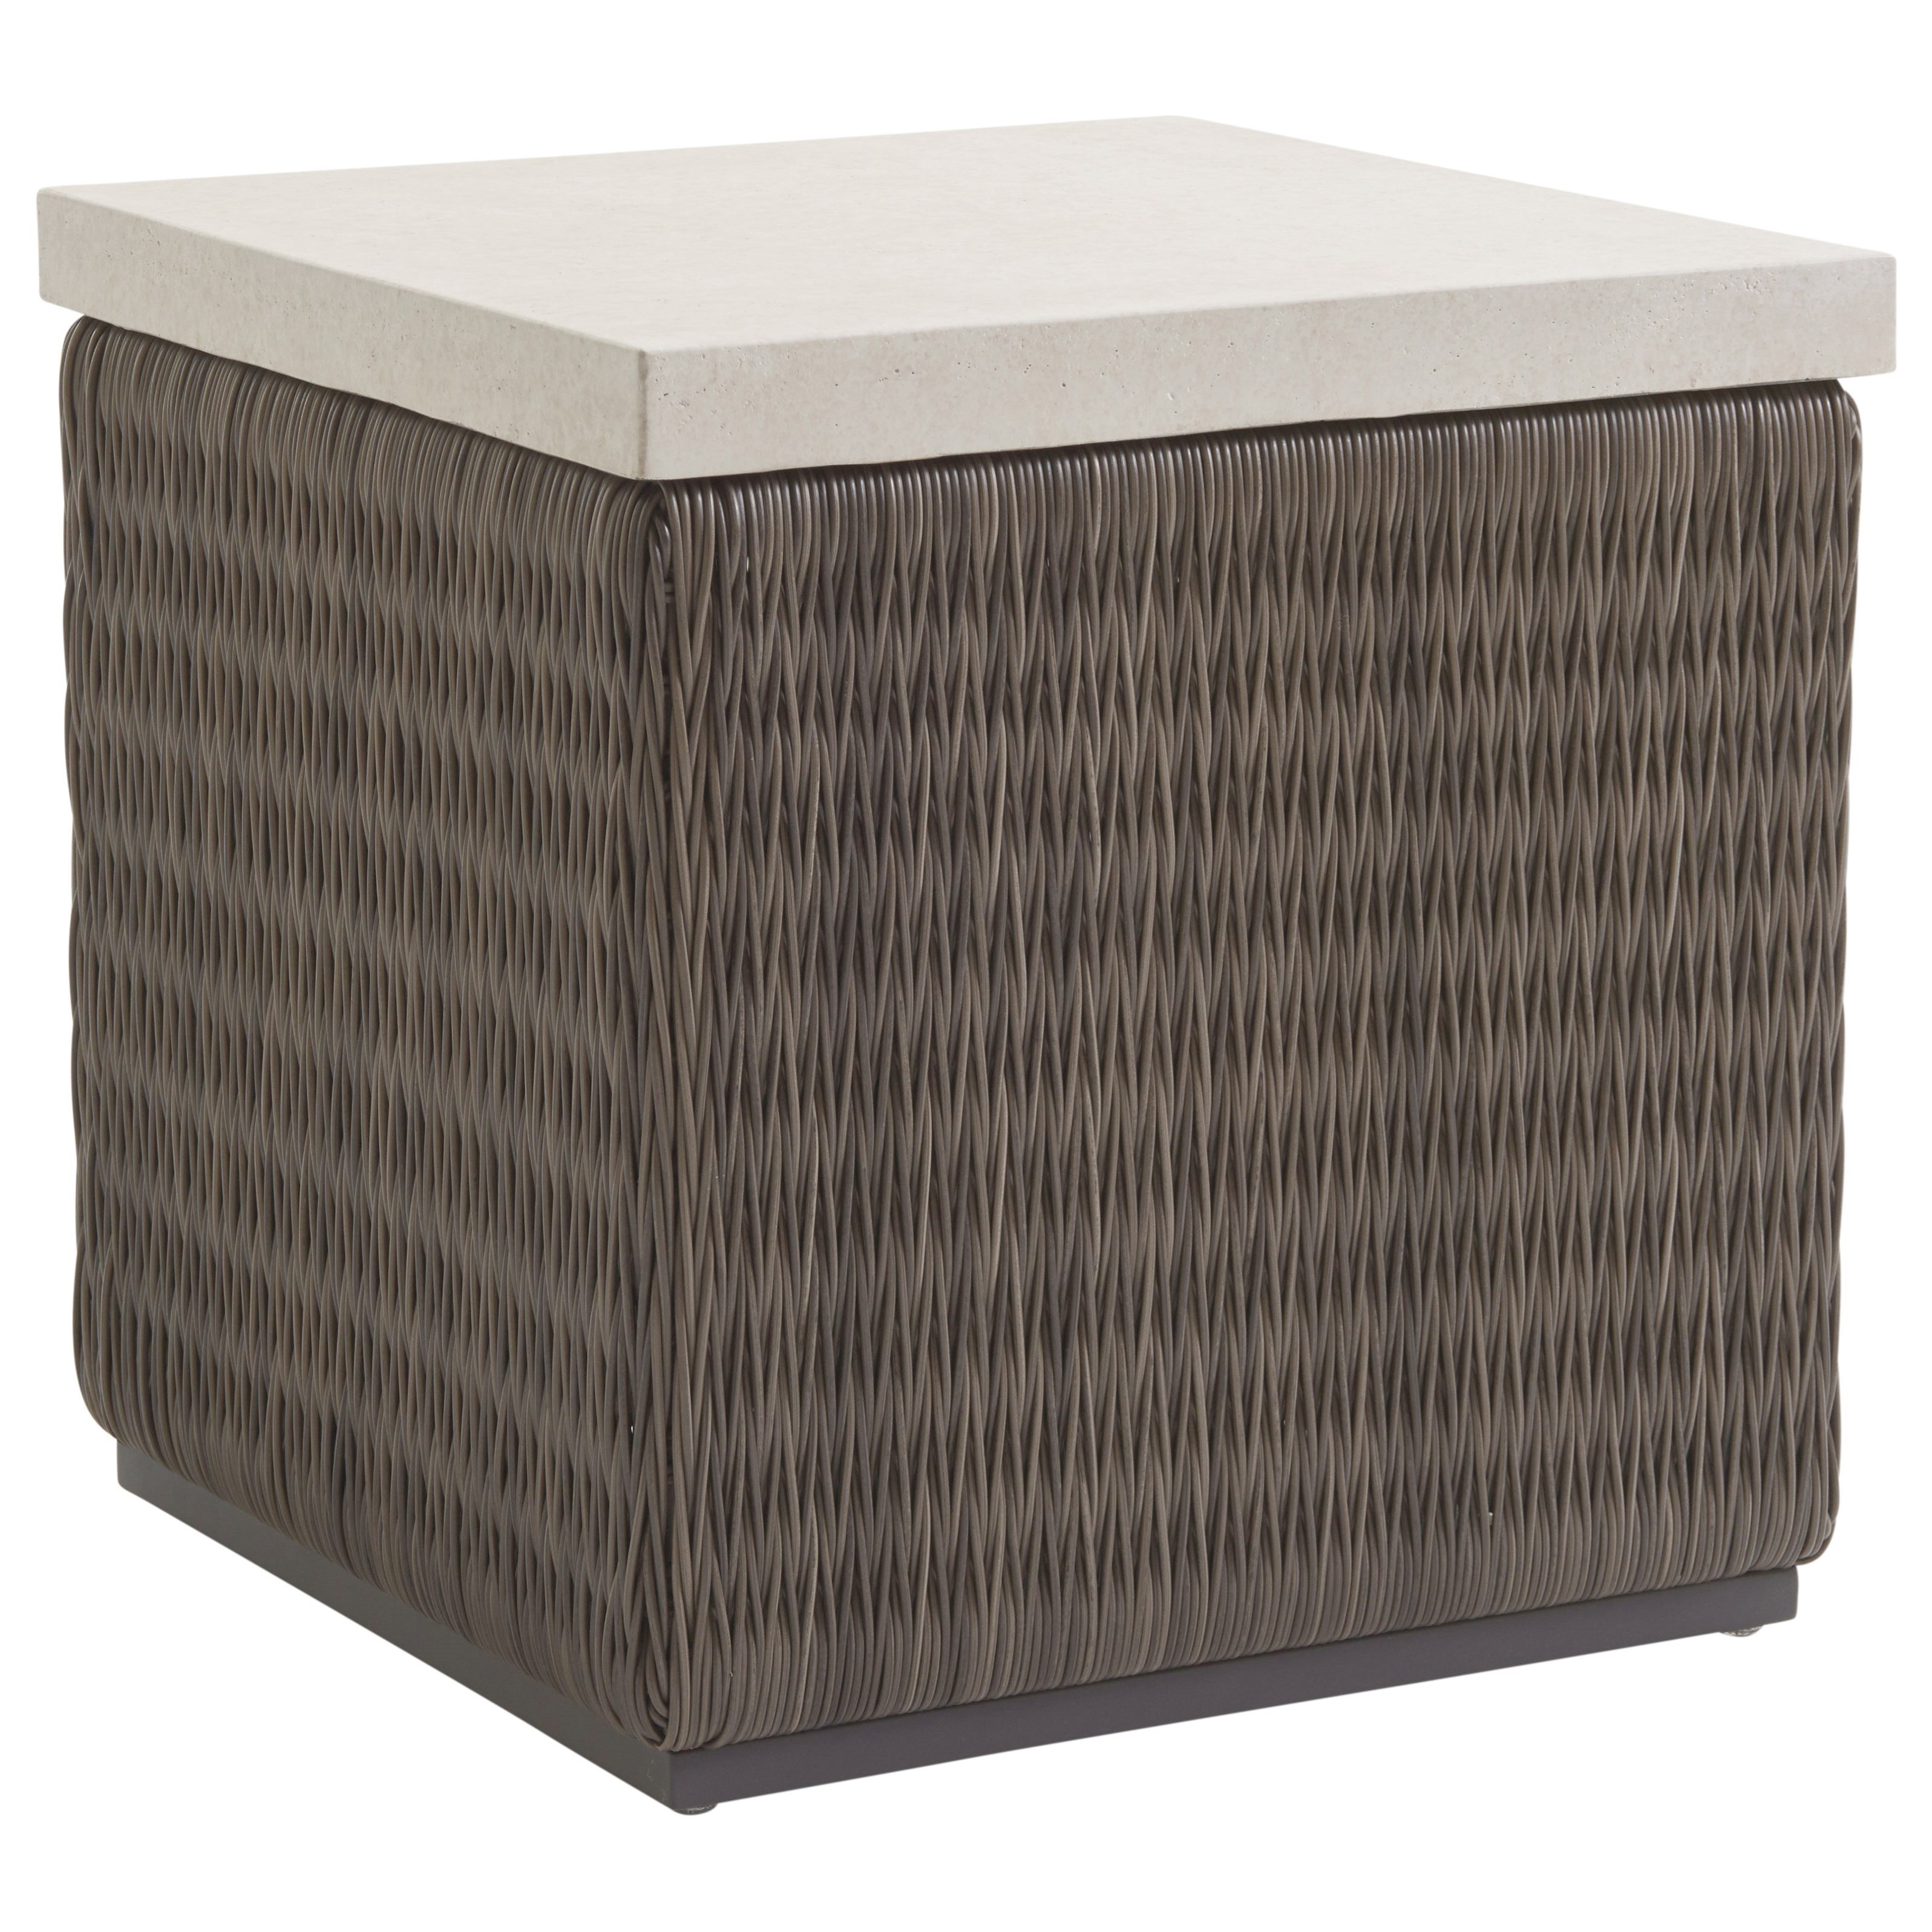 Cypress Point Ocean Terrace Outdoor Sq End Table with Weatherstone Top by Tommy Bahama Outdoor Living at Baer's Furniture